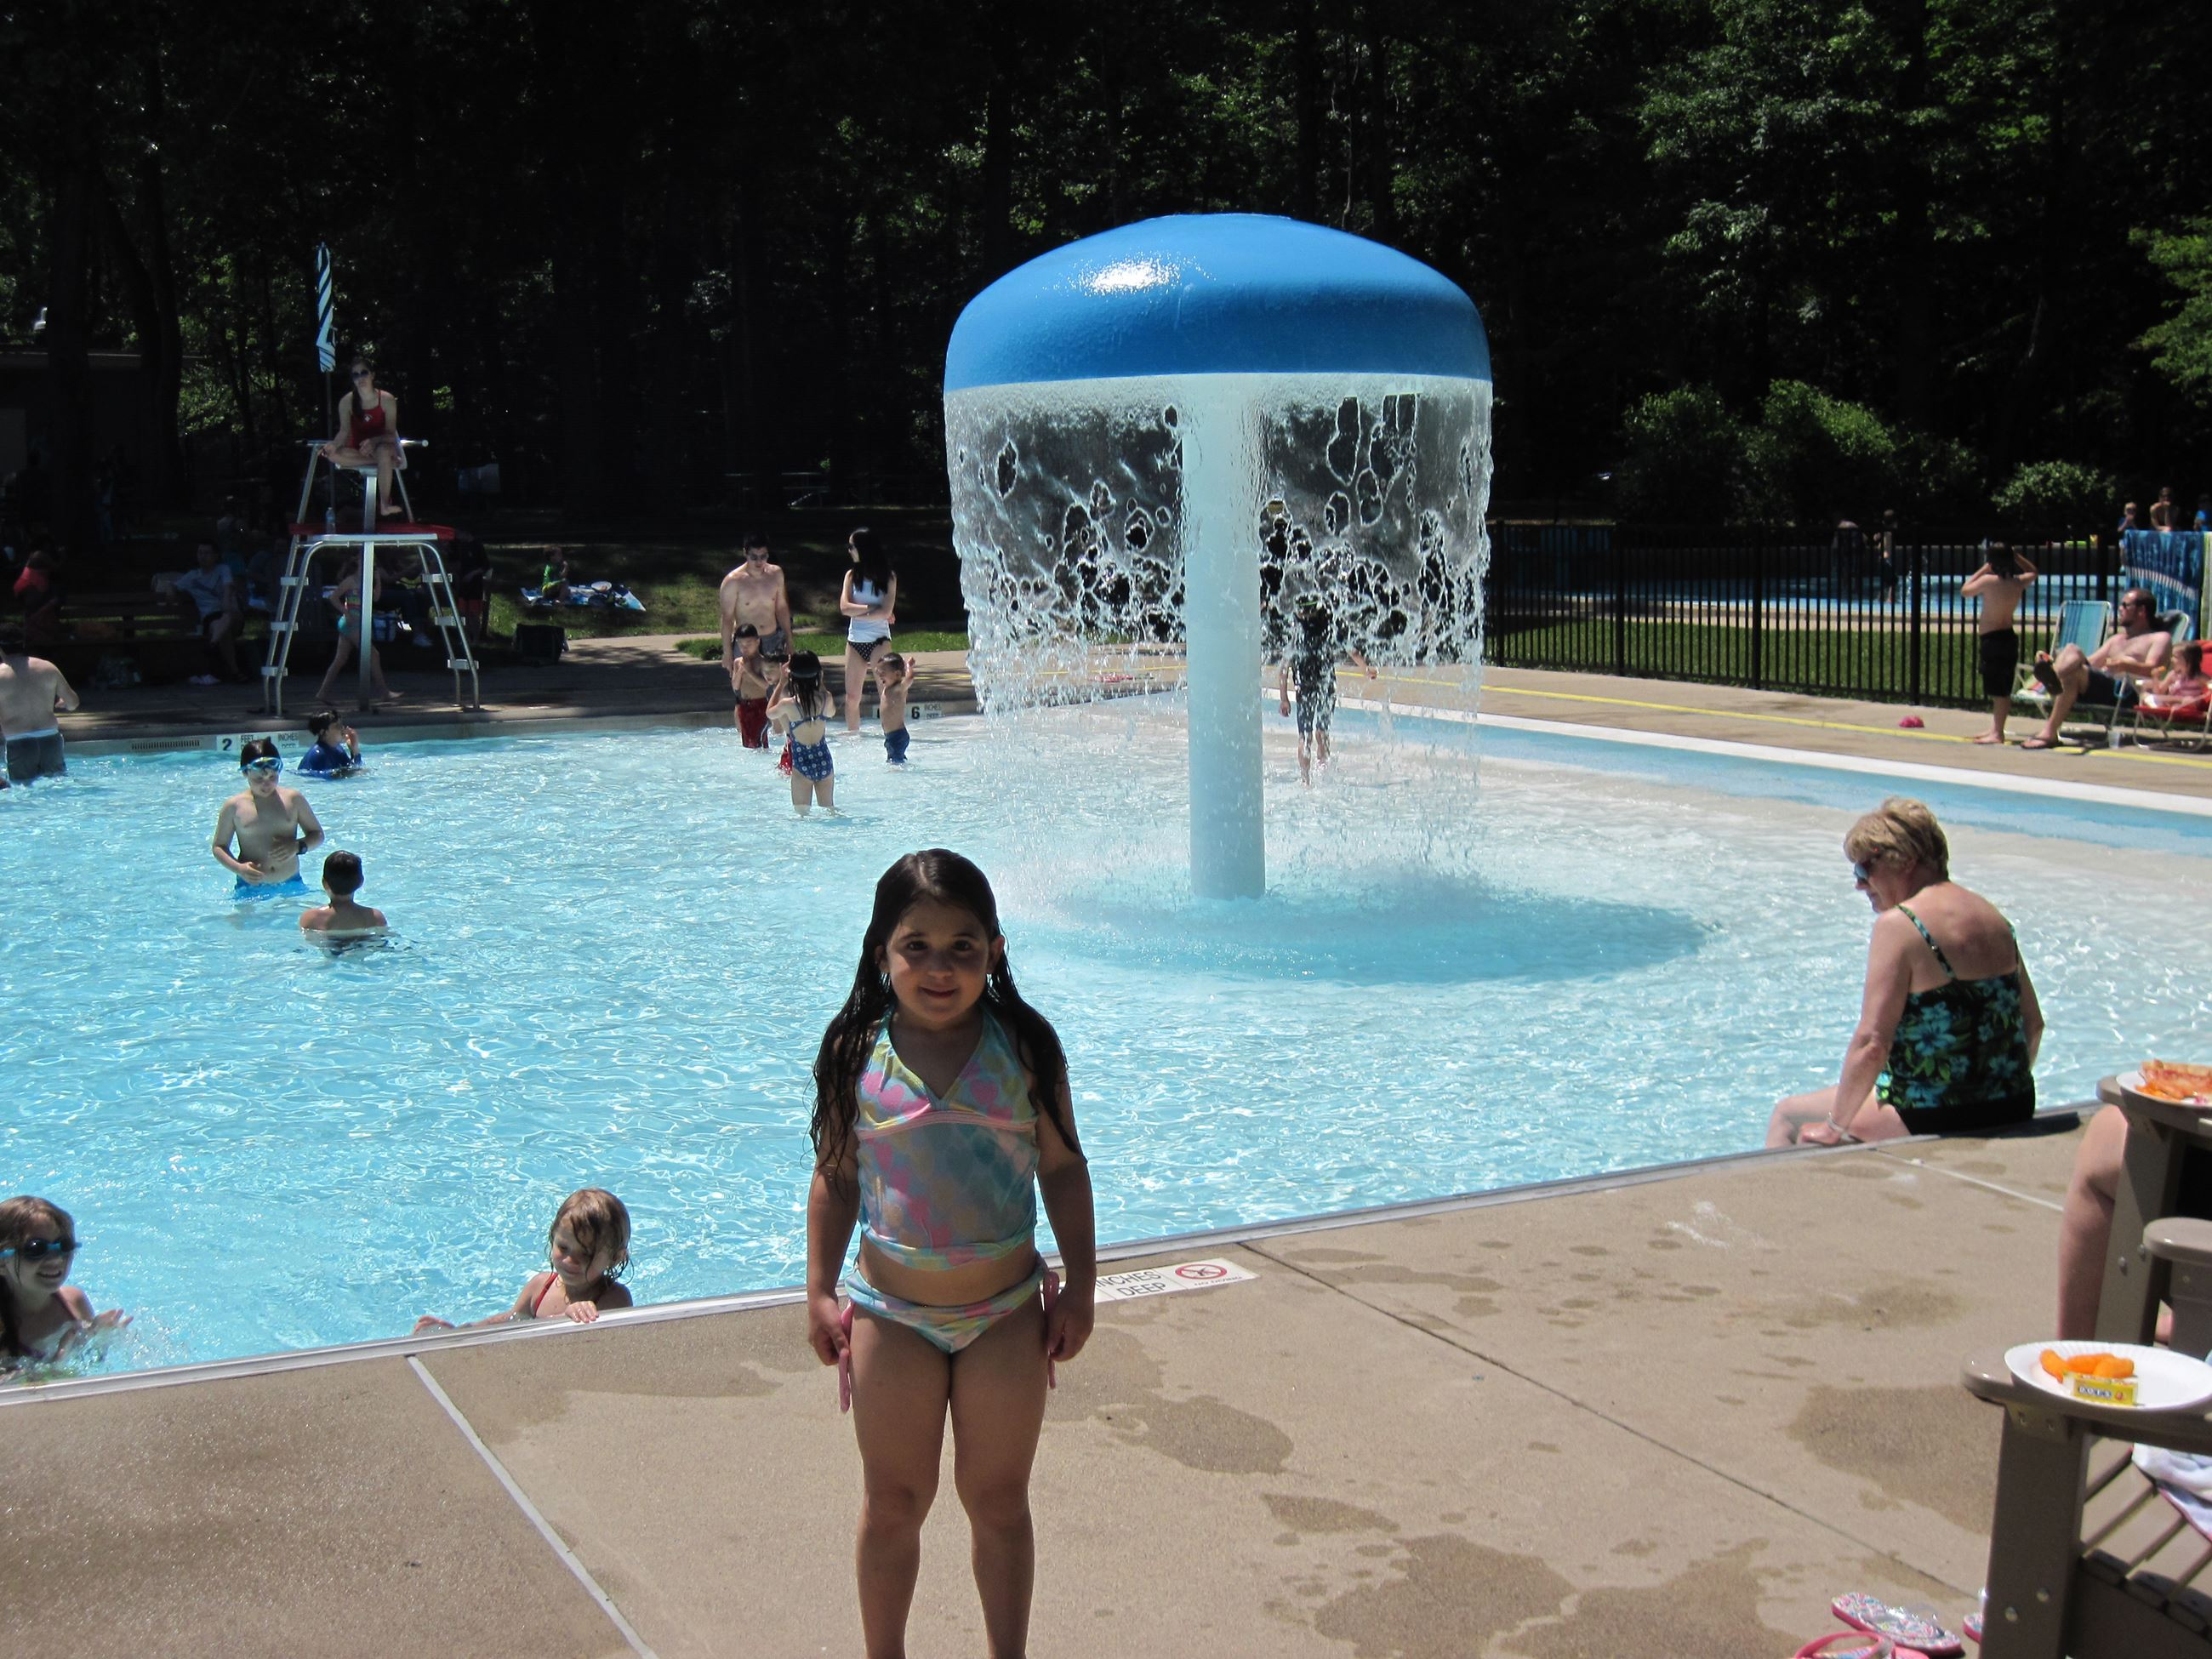 Little Girl Standing in Front of a Pool